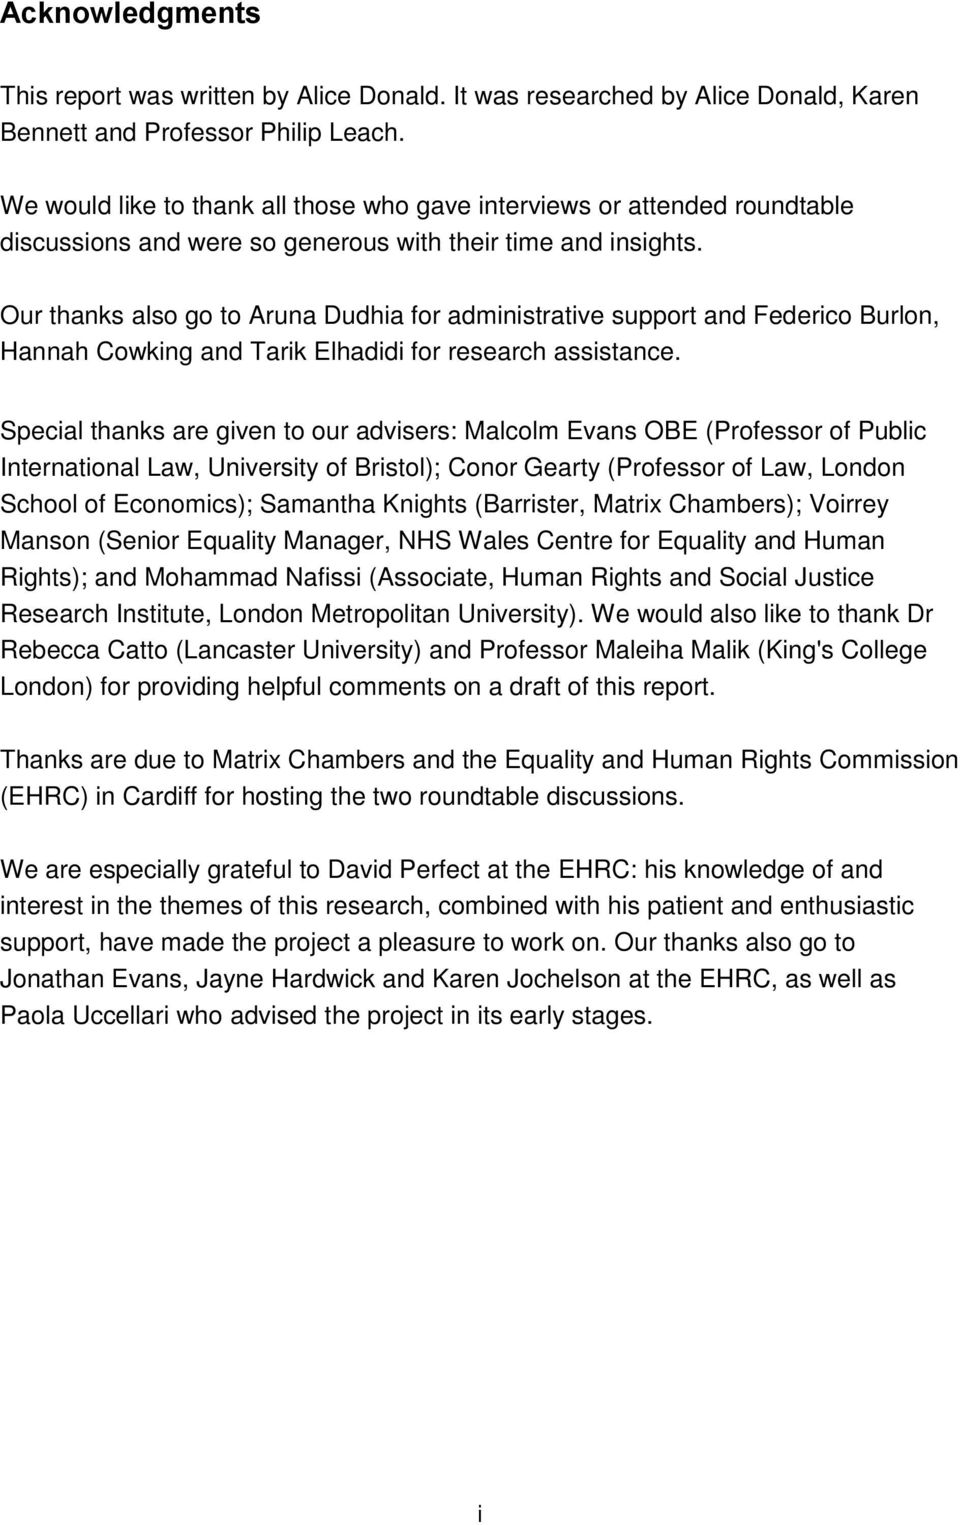 Our thanks also go to Aruna Dudhia for administrative support and Federico Burlon, Hannah Cowking and Tarik Elhadidi for research assistance.